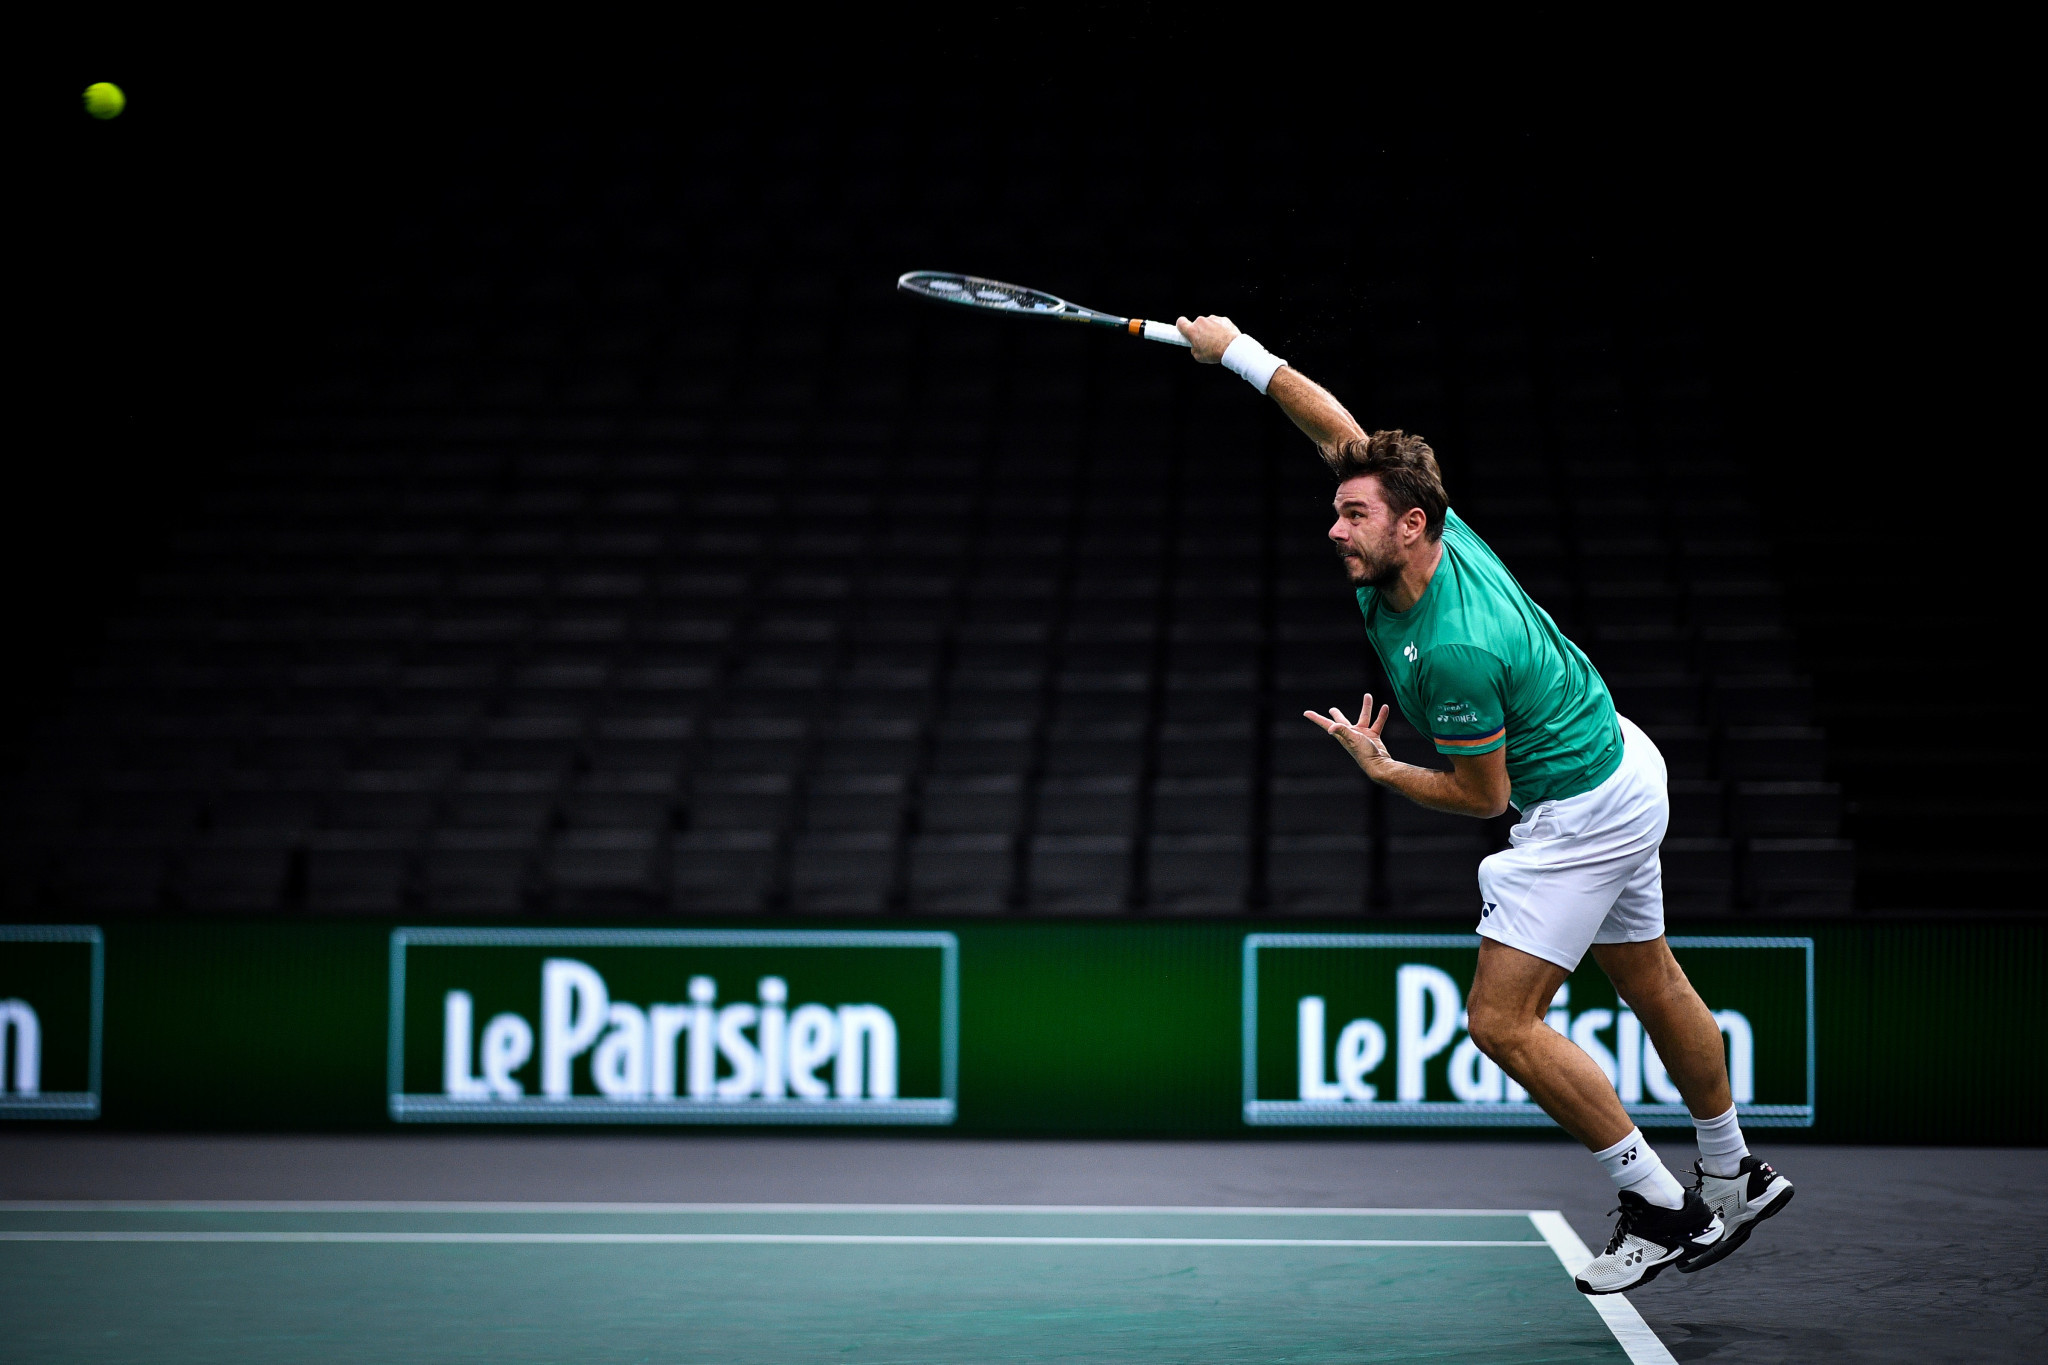 Stan Wawrinka hit eight aces in reaching round two of the Paris Masters ©Getty Images